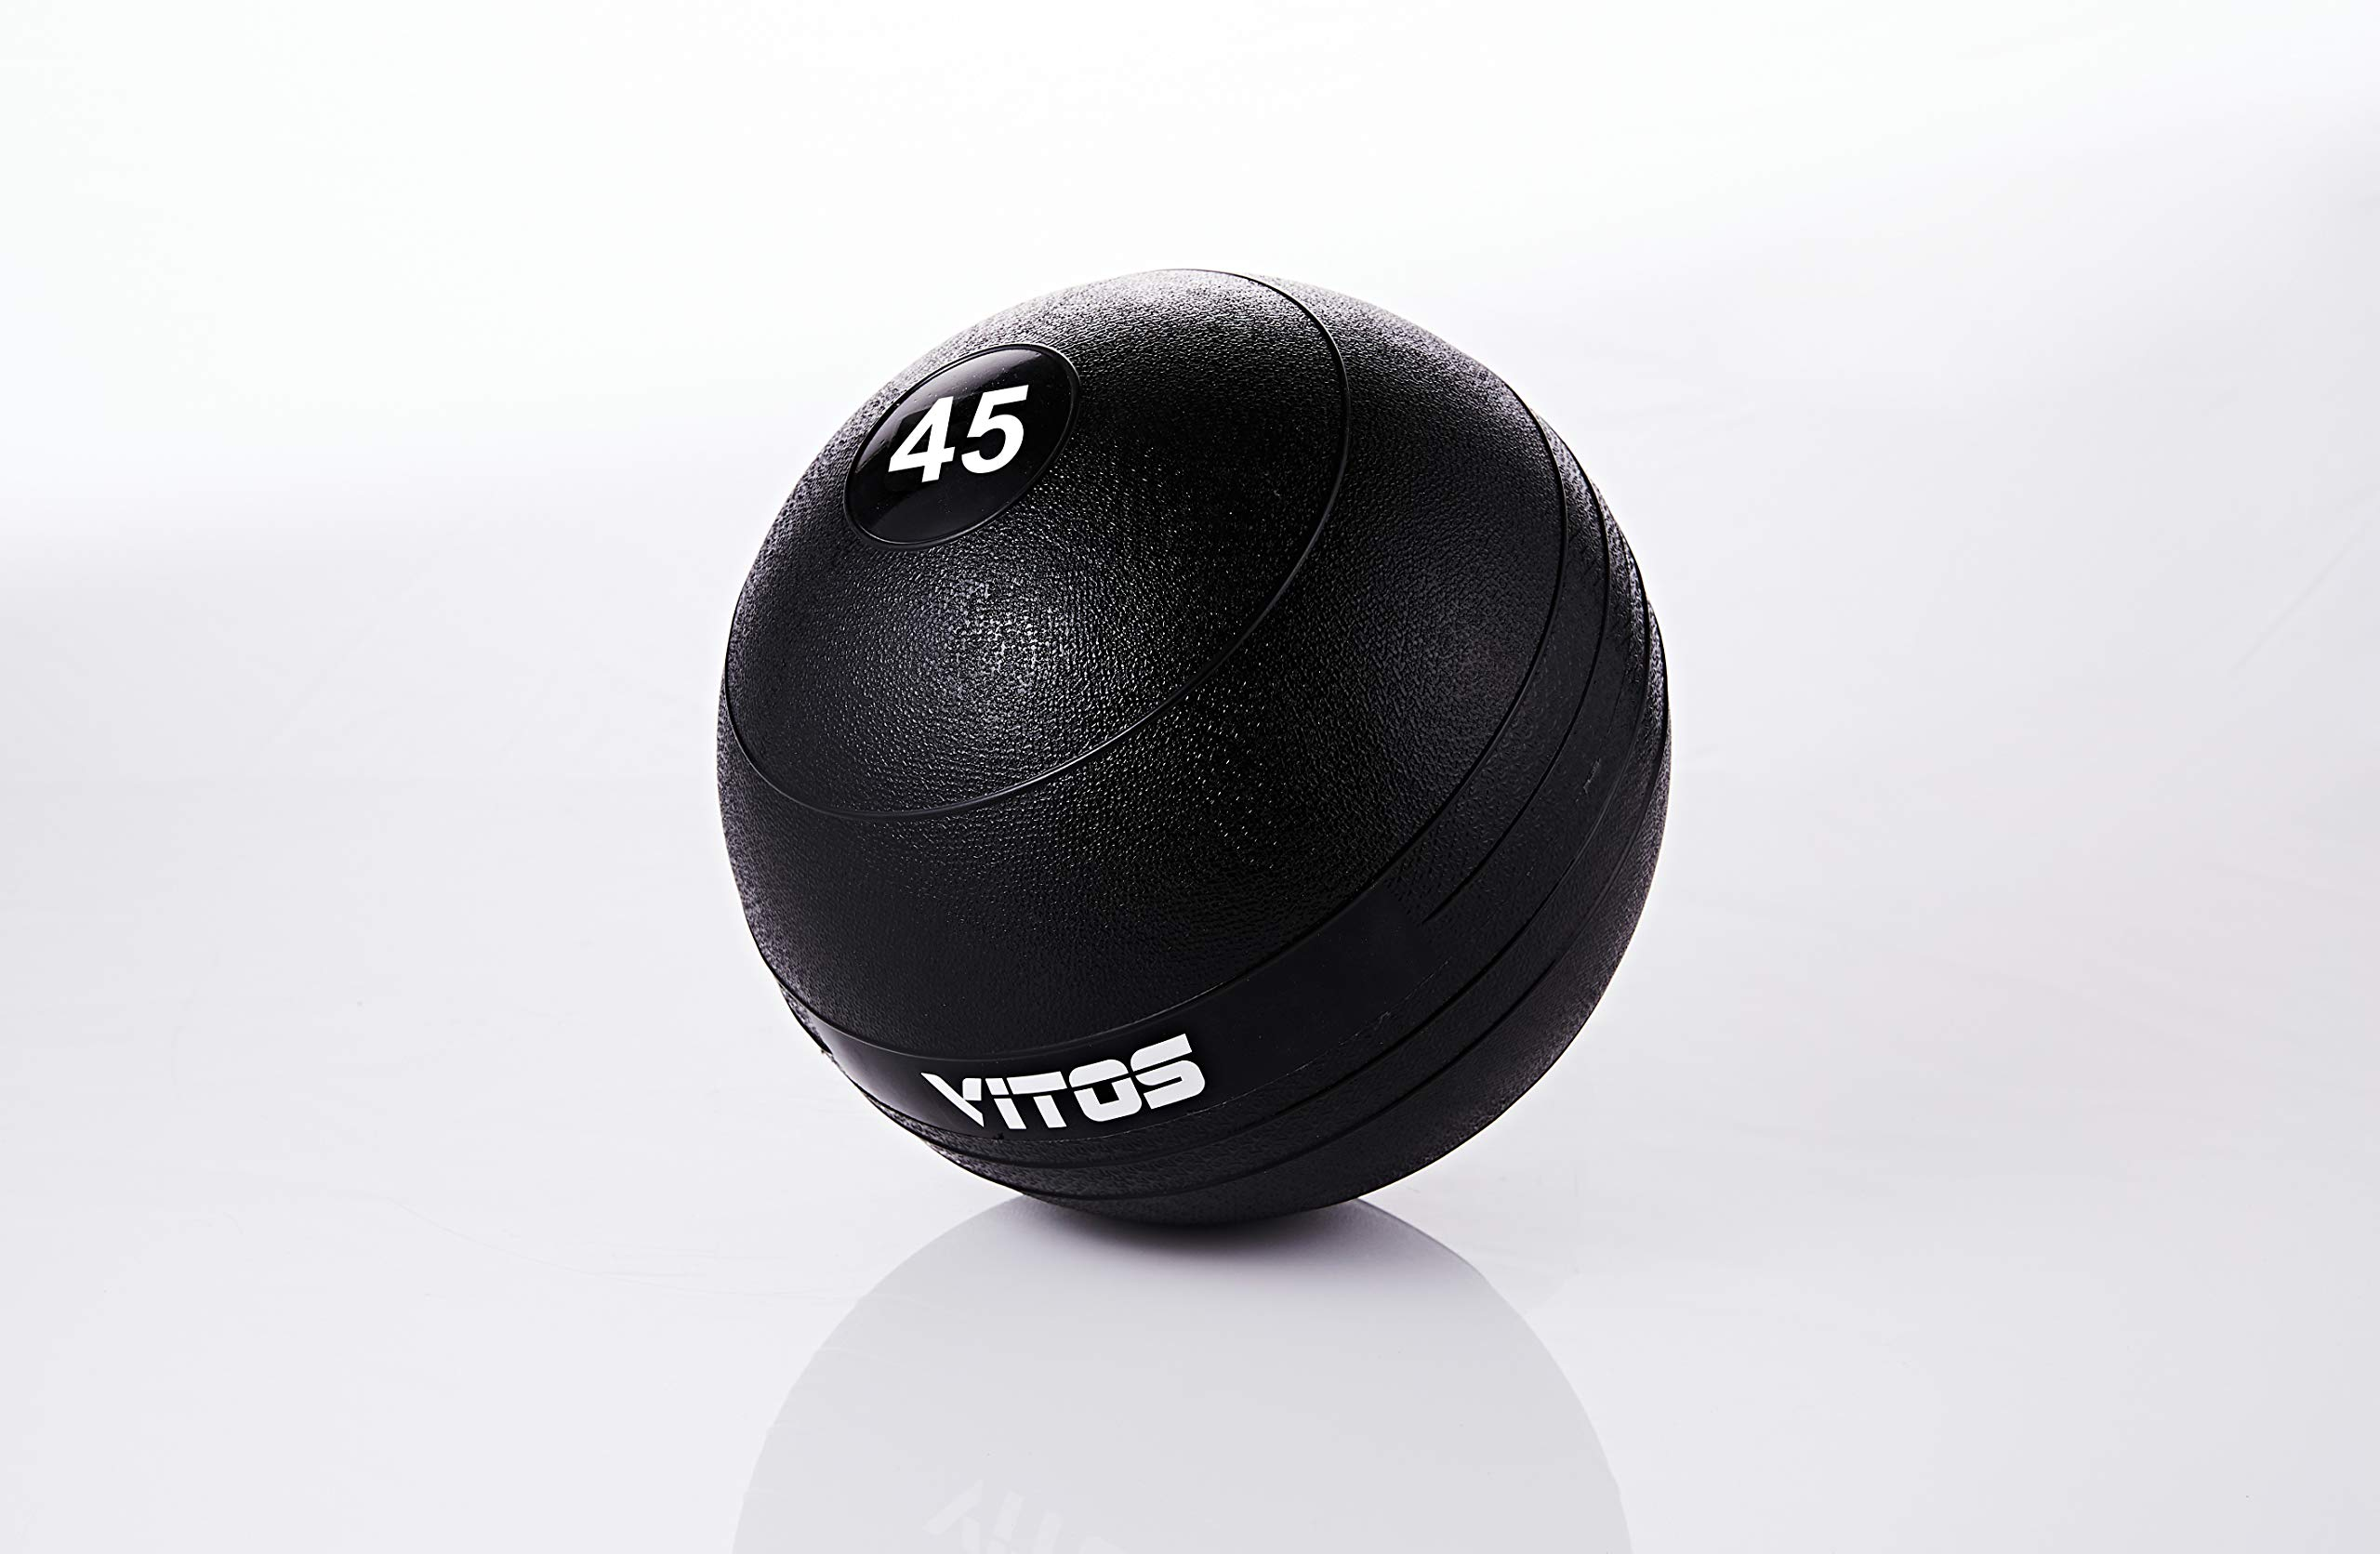 Vitos Fitness Exercise Slam Medicine Ball 10 to 70 Pounds | Durable Weighted Gym Accessory Strength Conditioning Cross Training Core Squats Lunges Spike Ball Rubber Weight Workout (45)